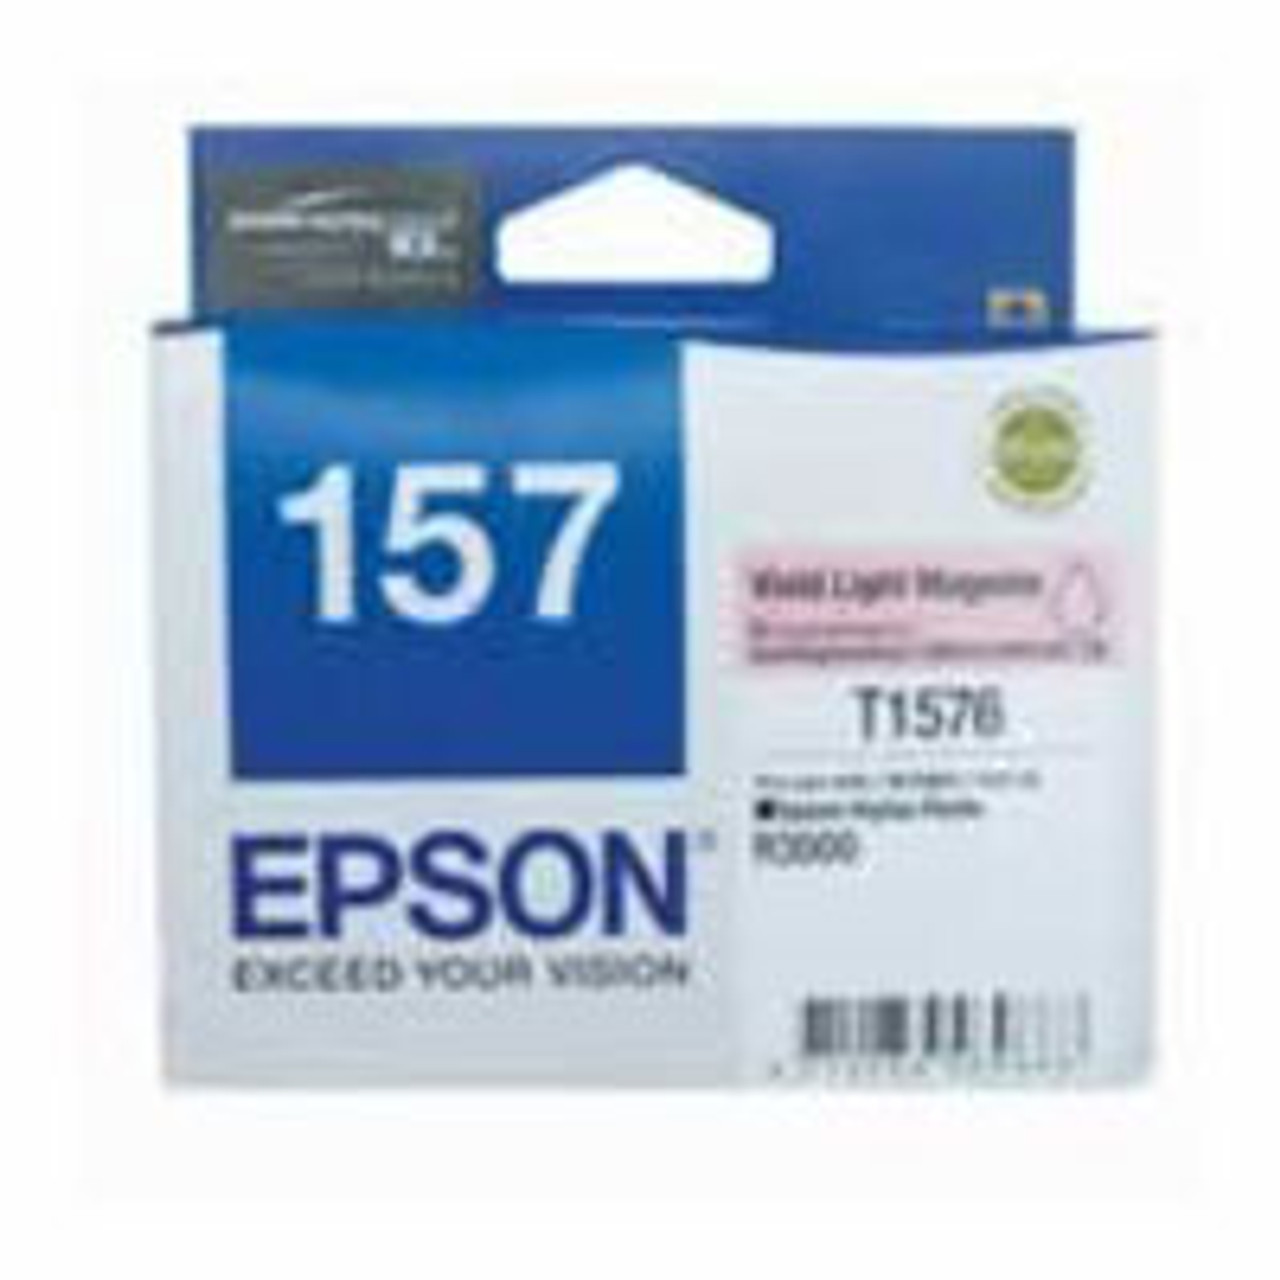 Image for Epson 1575 Light Cyan Ink Cartridge CX Computer Superstore